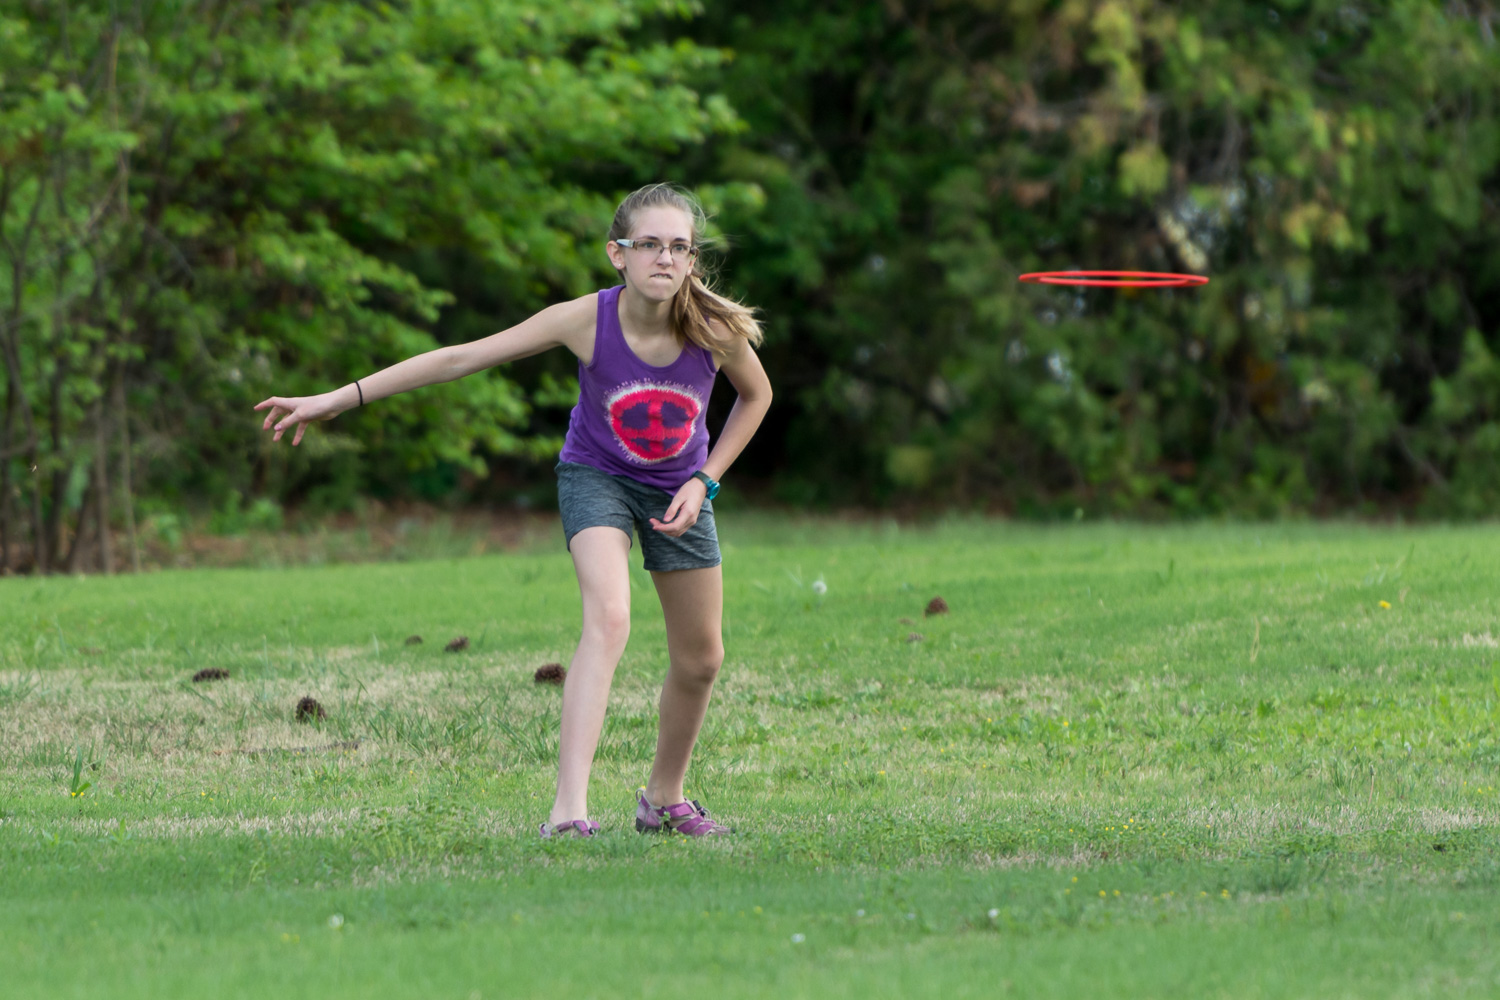 capture-fast-action-photos-frisbee